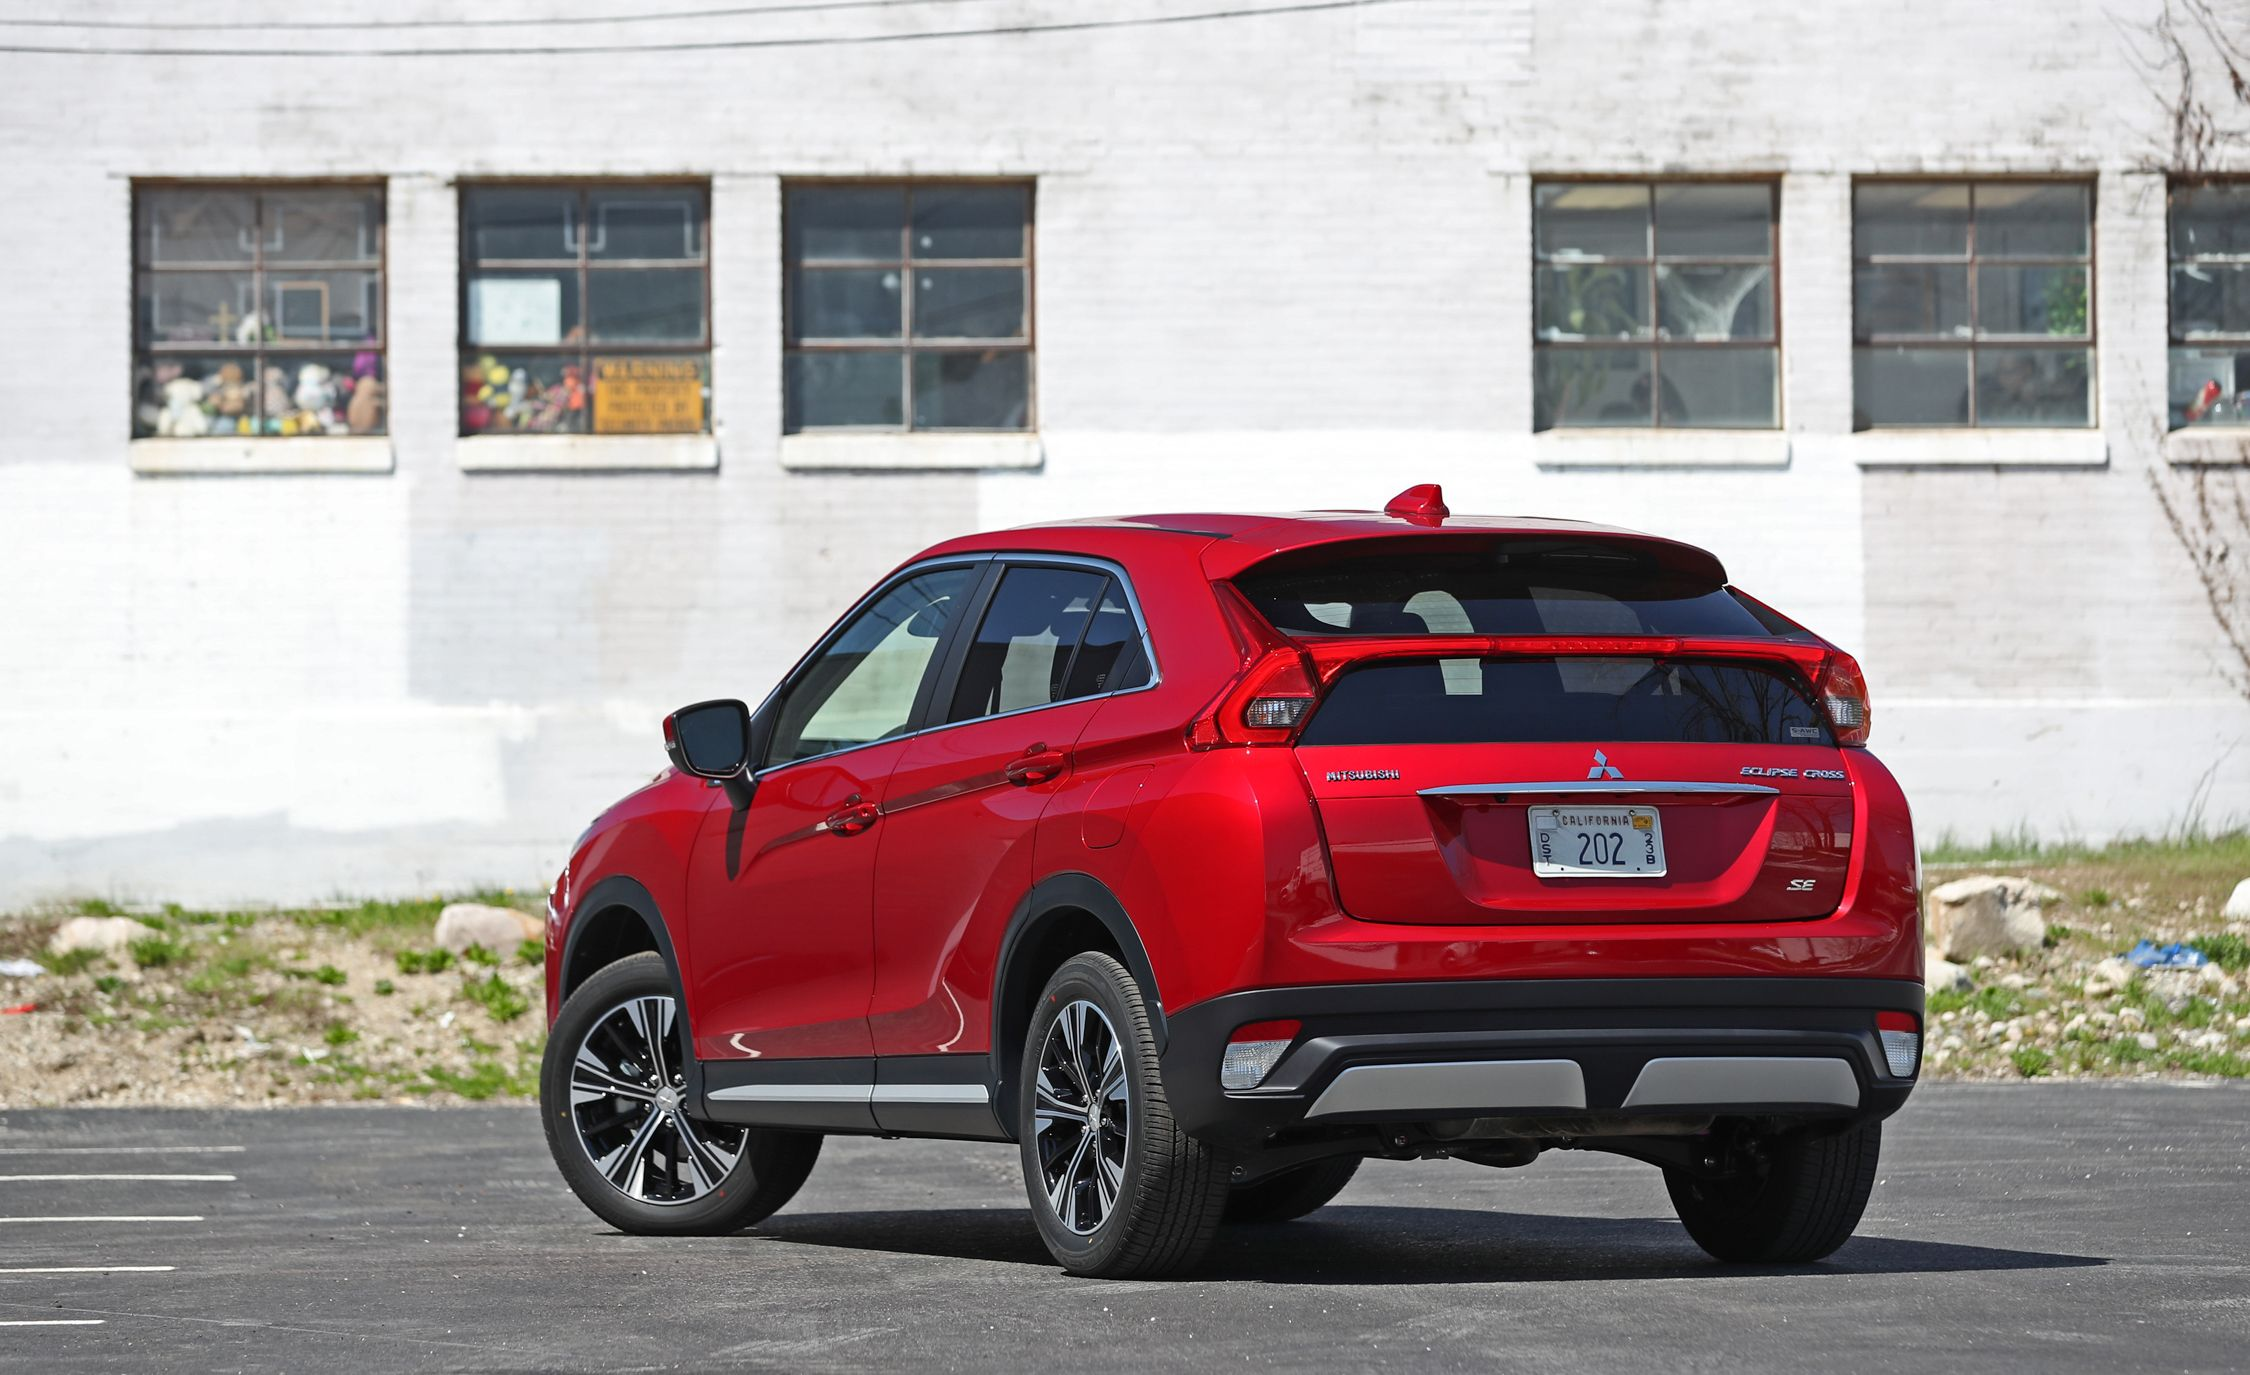 2019 Mitsubishi Eclipse Cross Reviews | Mitsubishi Eclipse Cross Price,  Photos, and Specs | Car and Driver